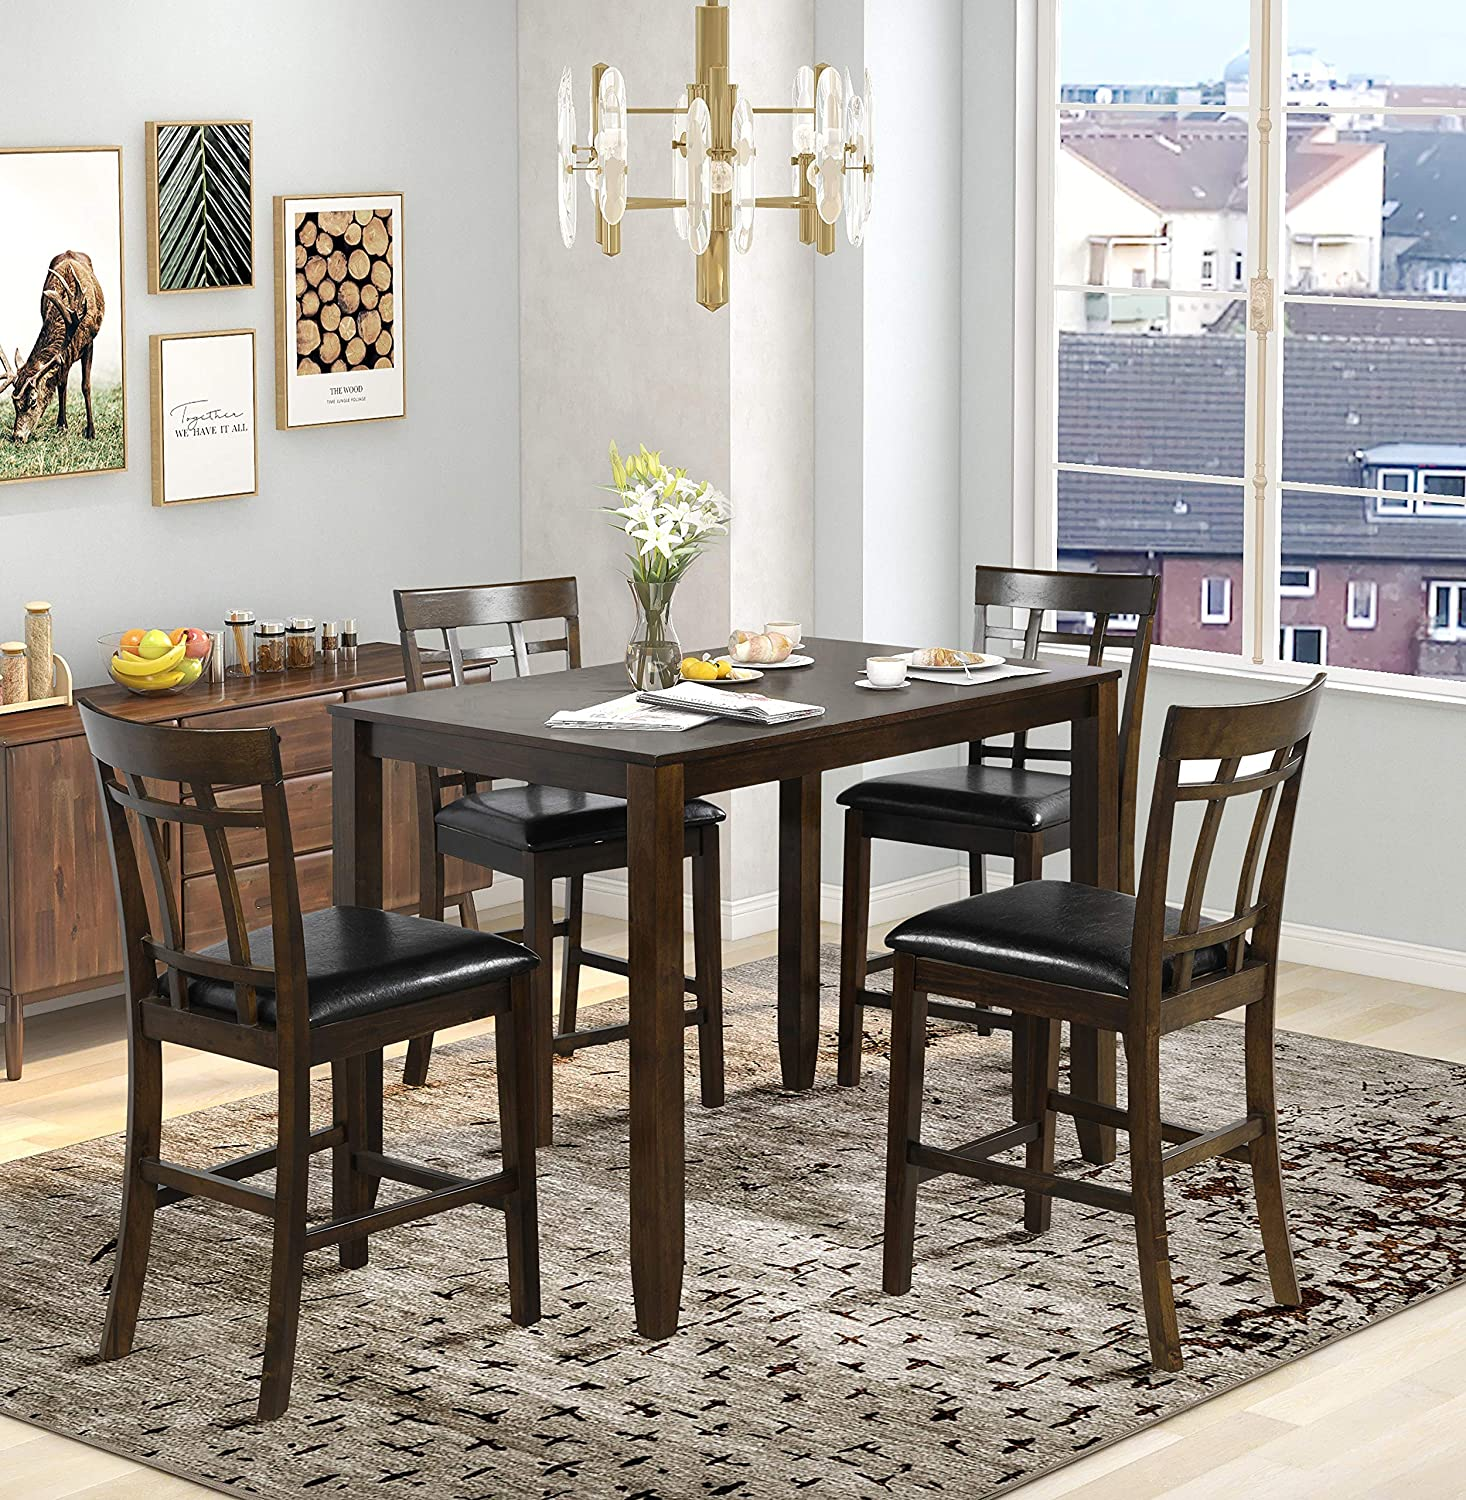 Harper Bright Designs 5 Piece Wood Dining Table Set Pub And Bistro Antique Mahogany Vintage Rectangular Counter Height Bar Table With 4 Chairs For Dining Room Table Chair Sets